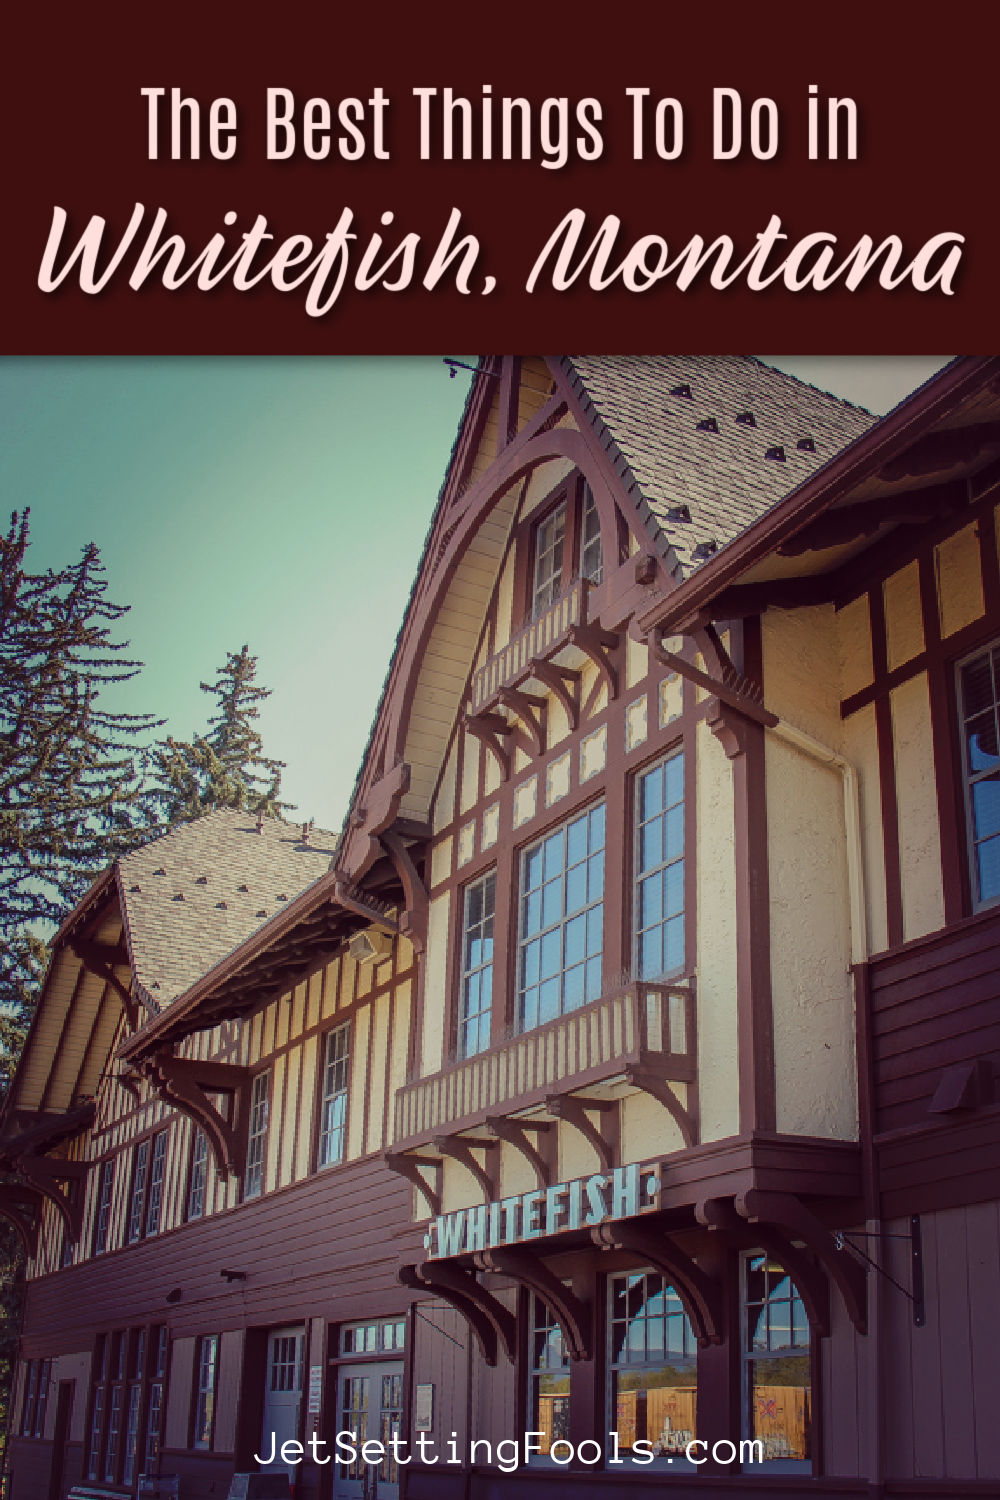 The Best Things To Do in Whitefish, Montana by JetSettingFools.com